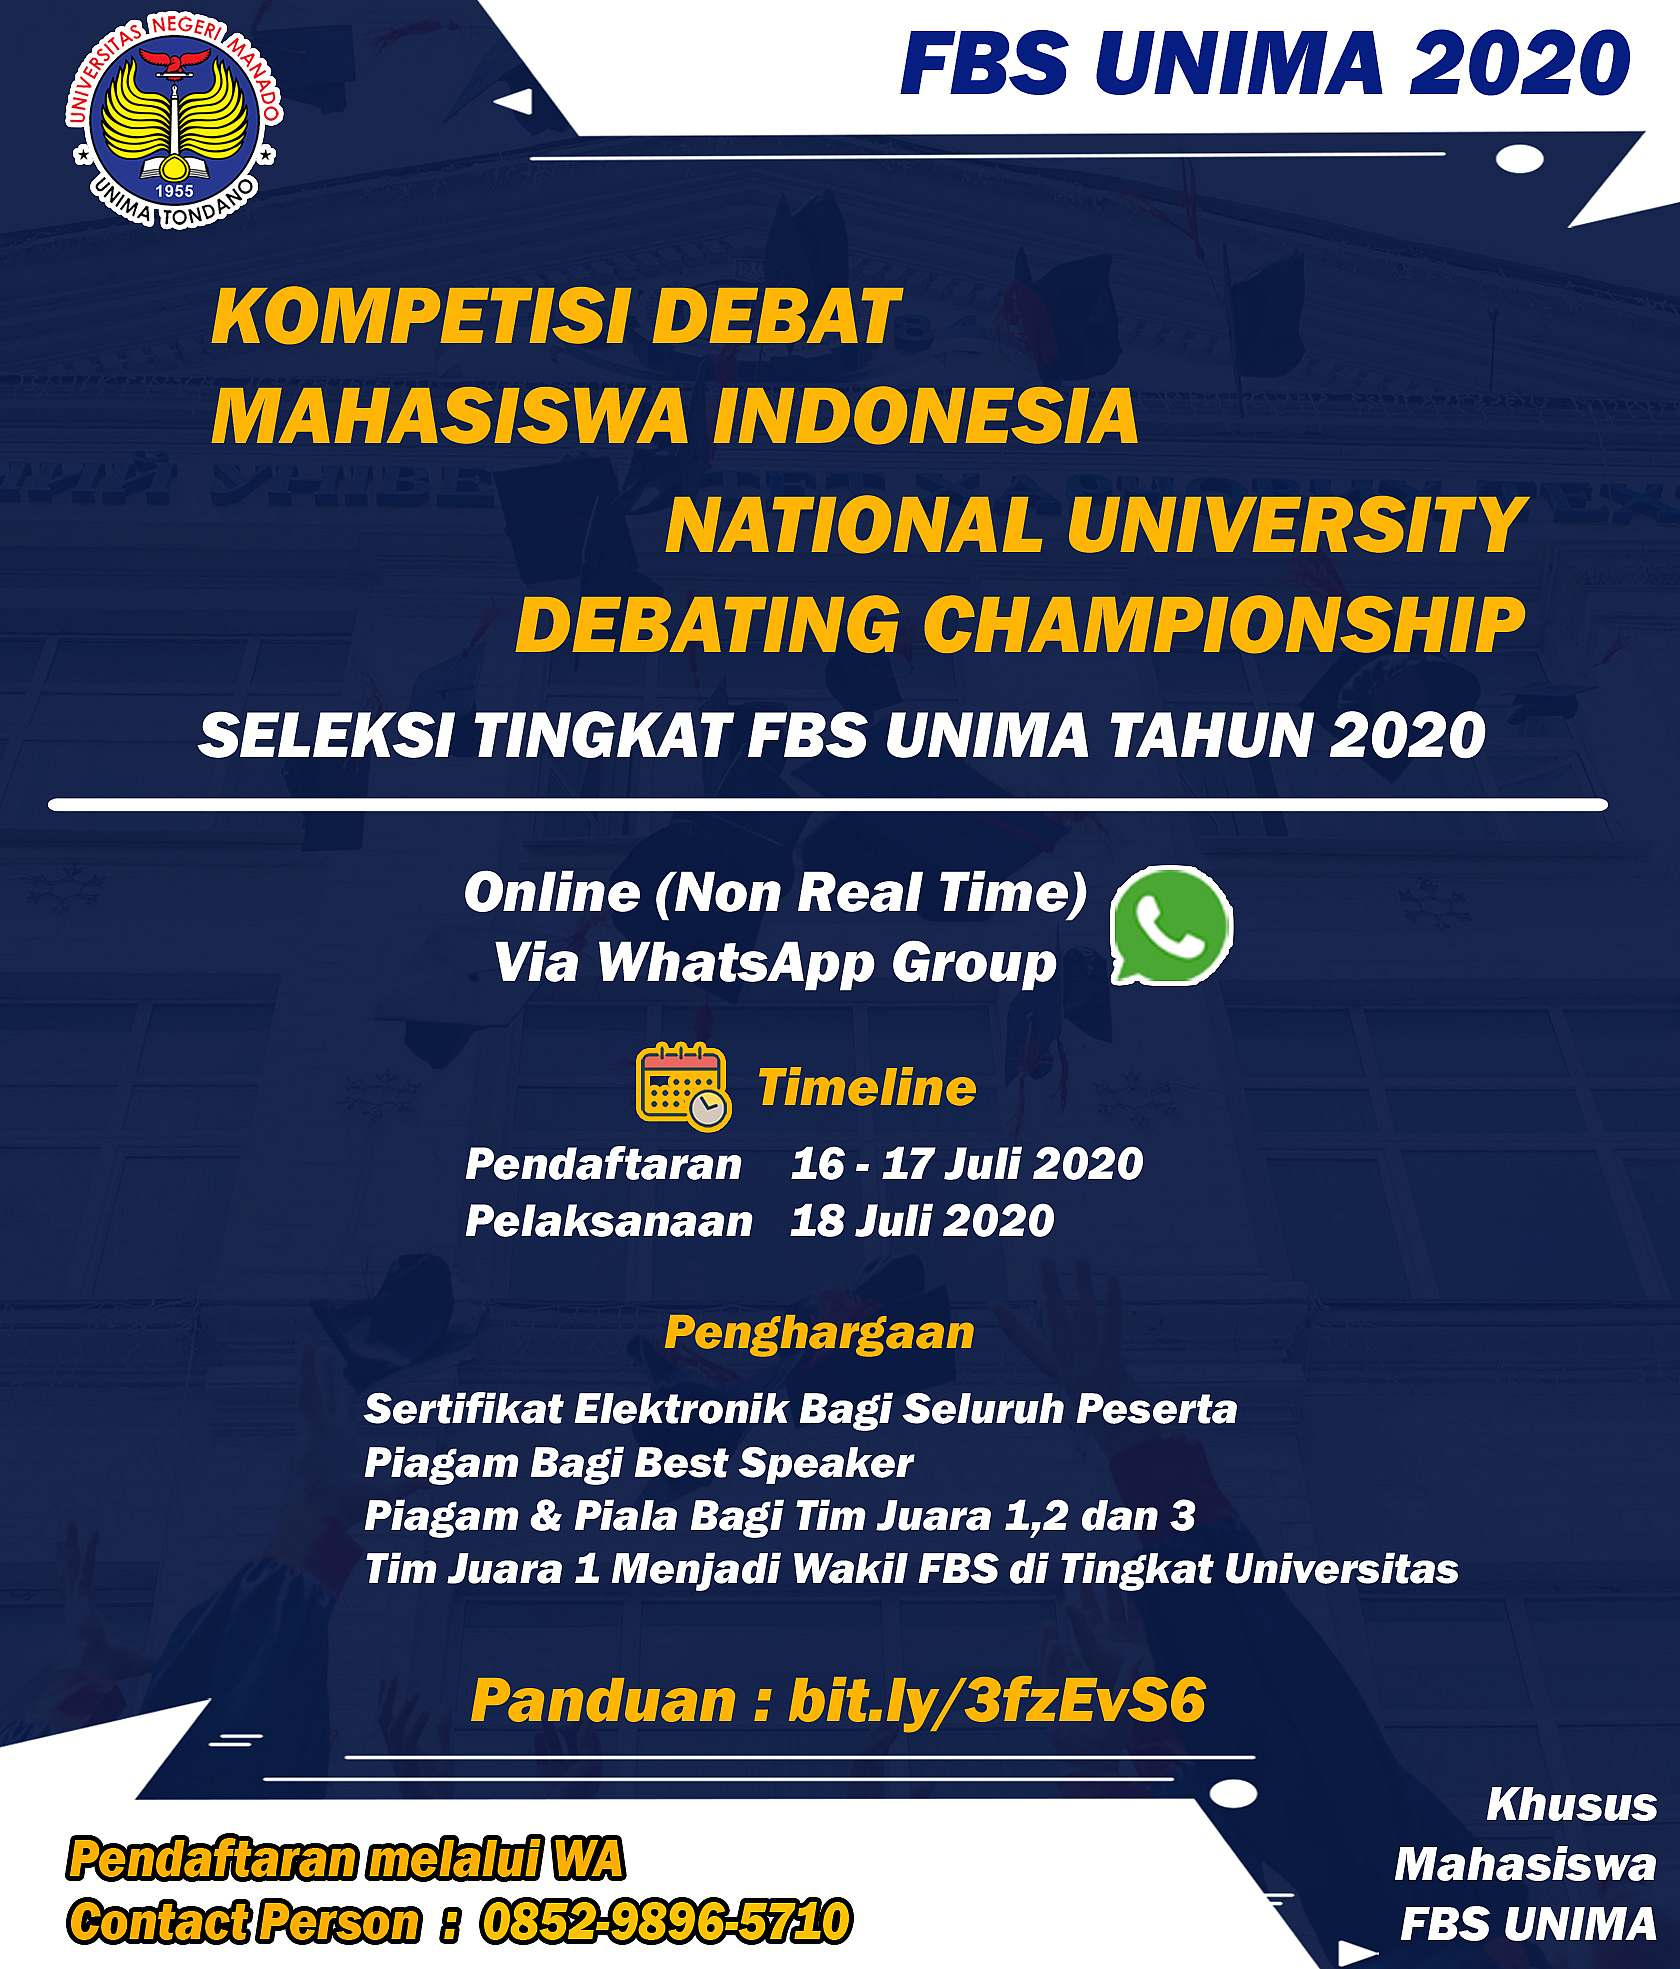 National University Debating Championship & Kompetisi Debat Mahasiswa Indonesia